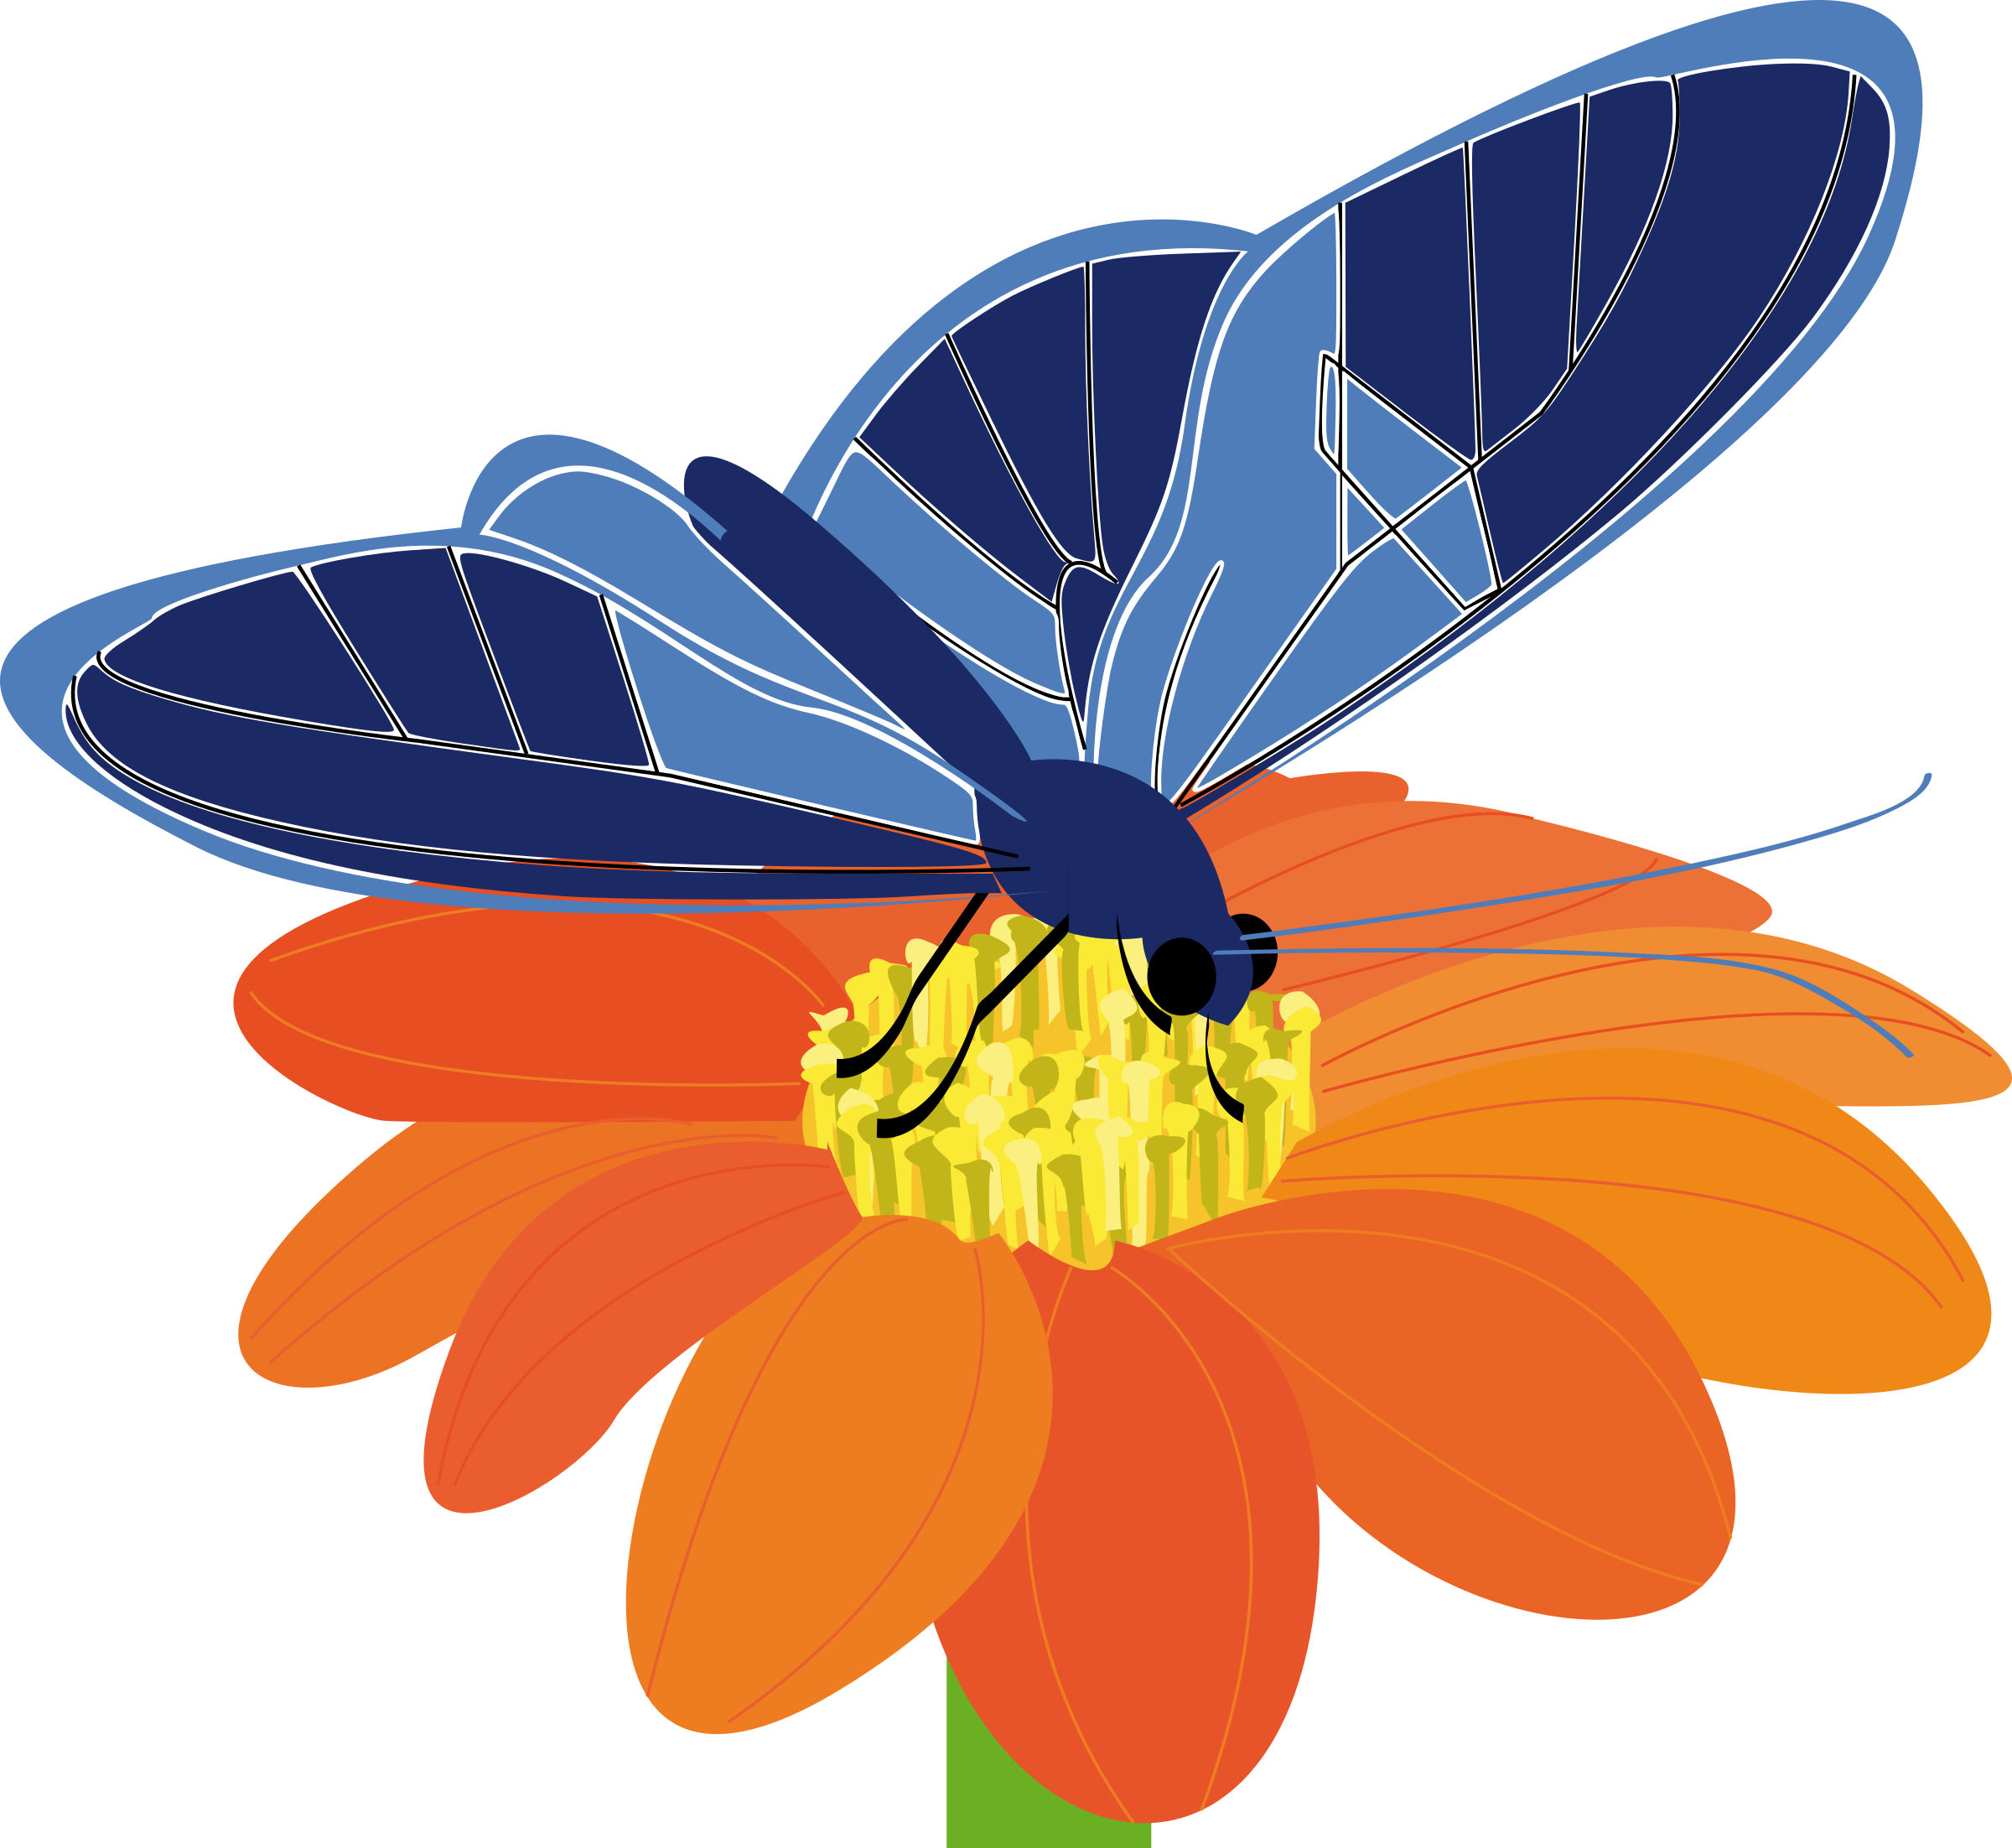 Blue Flower clipart big flower On butterfly Clipart presquesage a